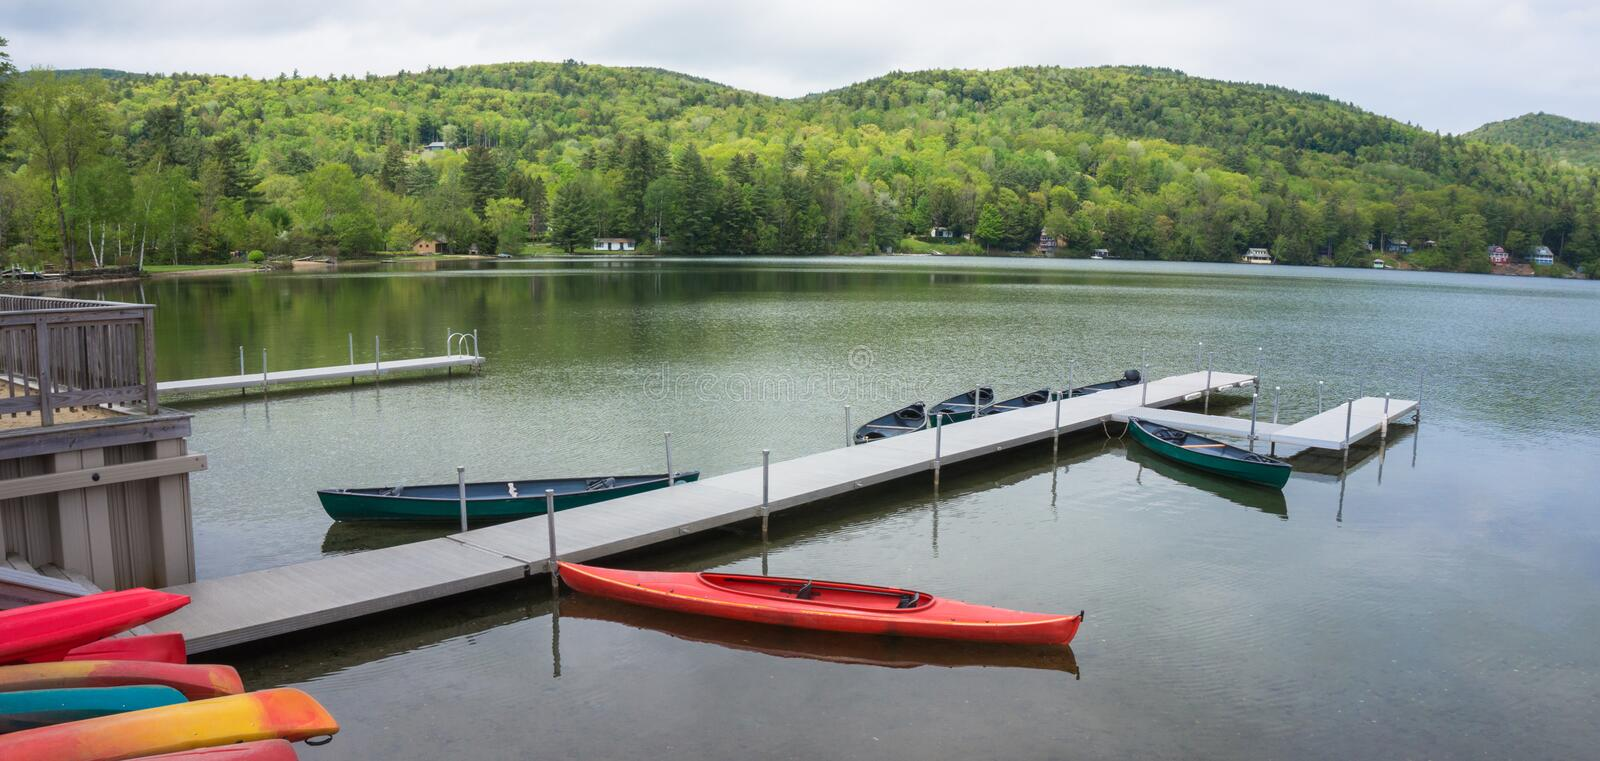 Resort pier on lake. Pier from resort with kayaks and canoes ready for water sport enjoyment royalty free stock images